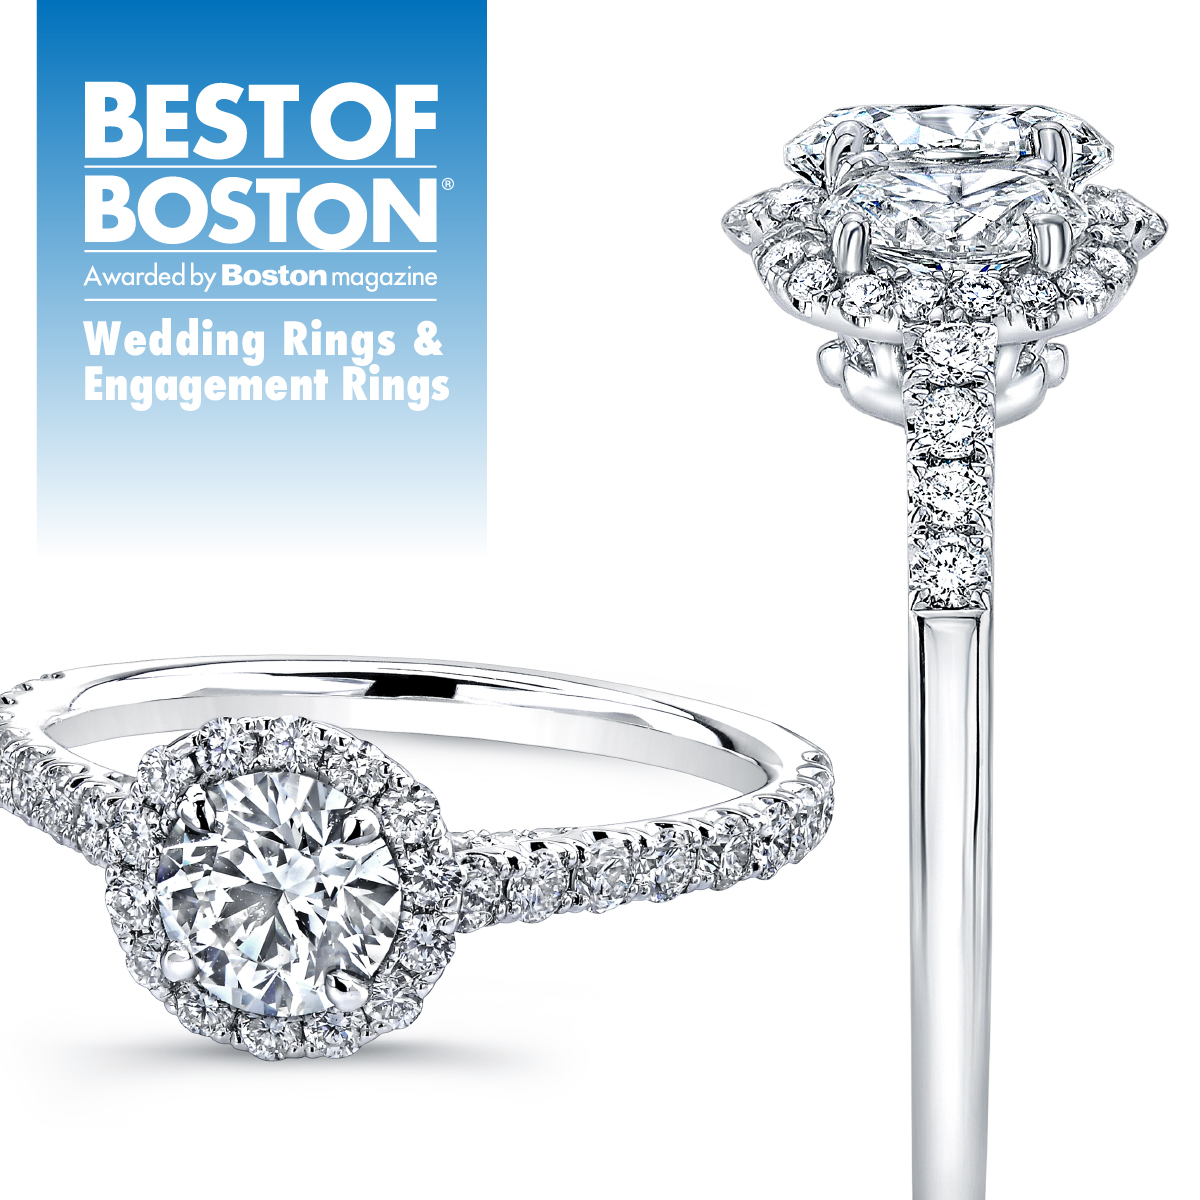 Boston Jeweler For Engagement Rings Fashion Diamond Jewelry